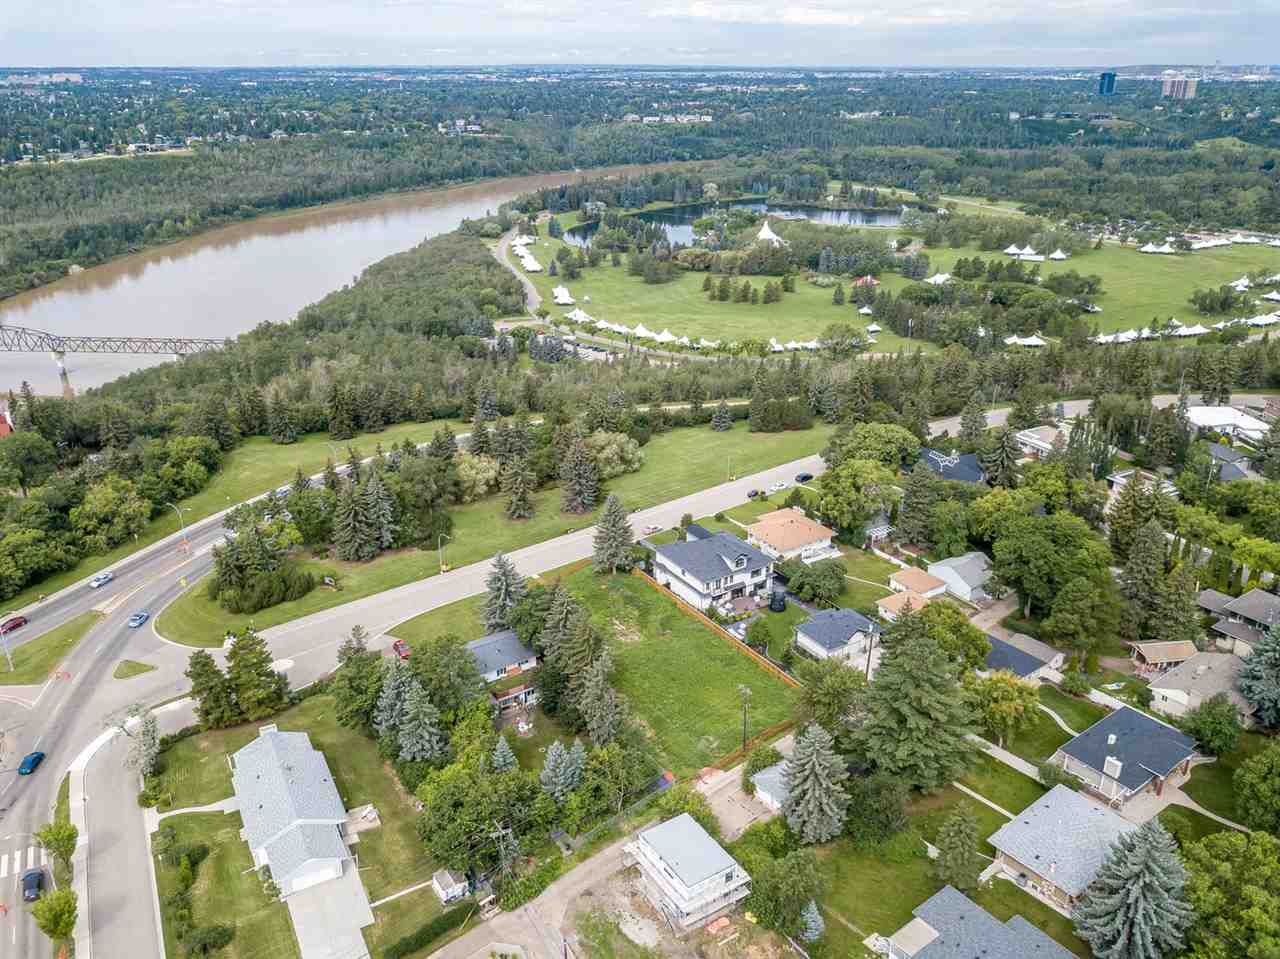 THE BEST LOCATION IN NORTH WINDSOR PARK - ONE OF THE LARGEST LOTS - STUNNING LOCATION on Saskatchewan Drive! Sweeping views of the river valley & a one of a kind location for your future home.  JUST OVER 17,858sqft of flat development land ? roughly 94.35 feet x 188.38 feet, an incredible opportunity! Capturing the graceful perceptions of the beauty in nature & the possibilities of contemporary elegance with a new home in a prestigious location.